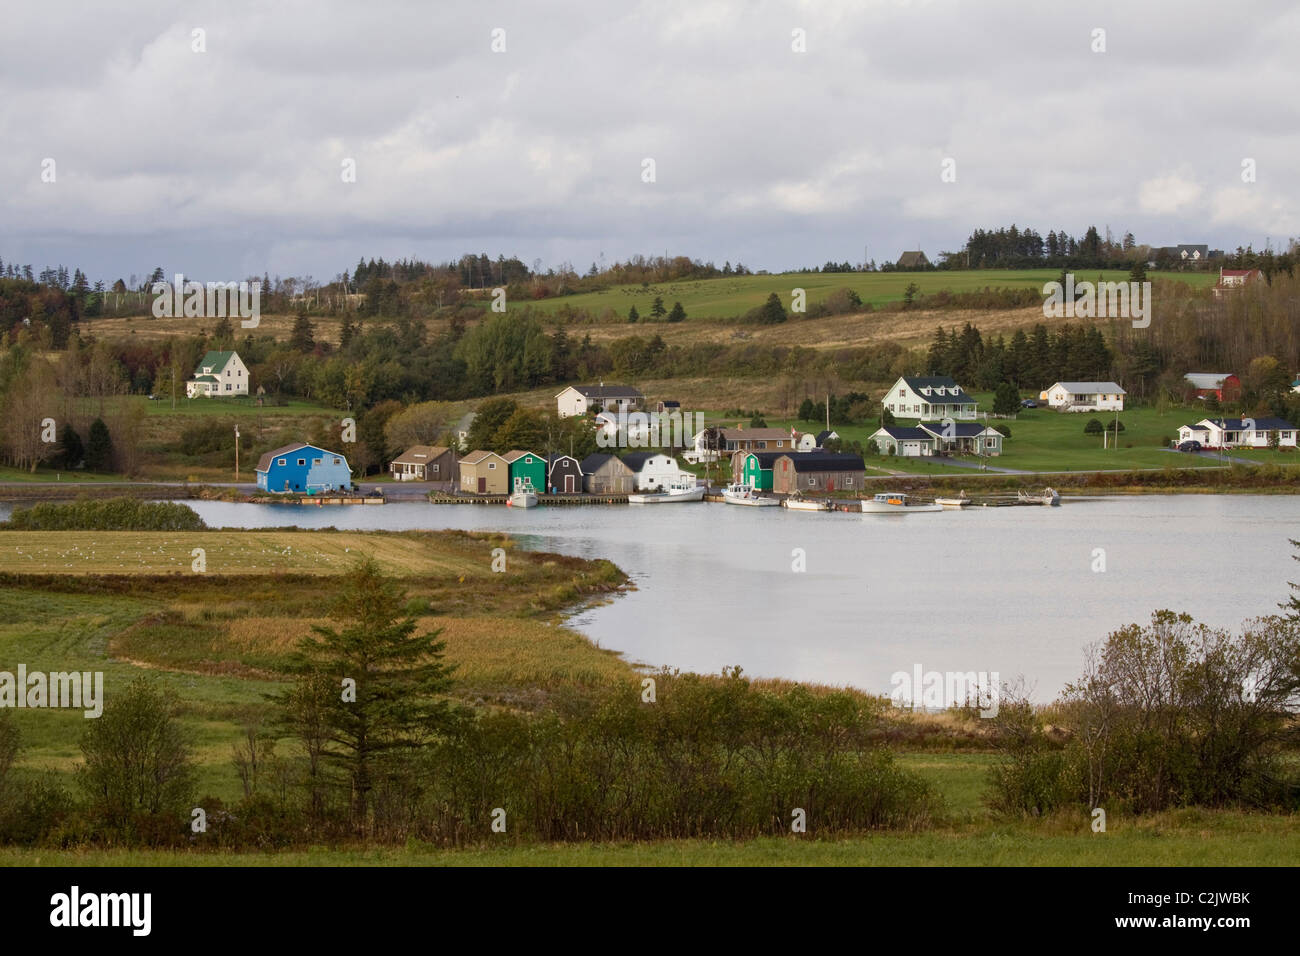 Picturesque community of French River on the north shore of Prince Edward Island, Canada - Stock Image